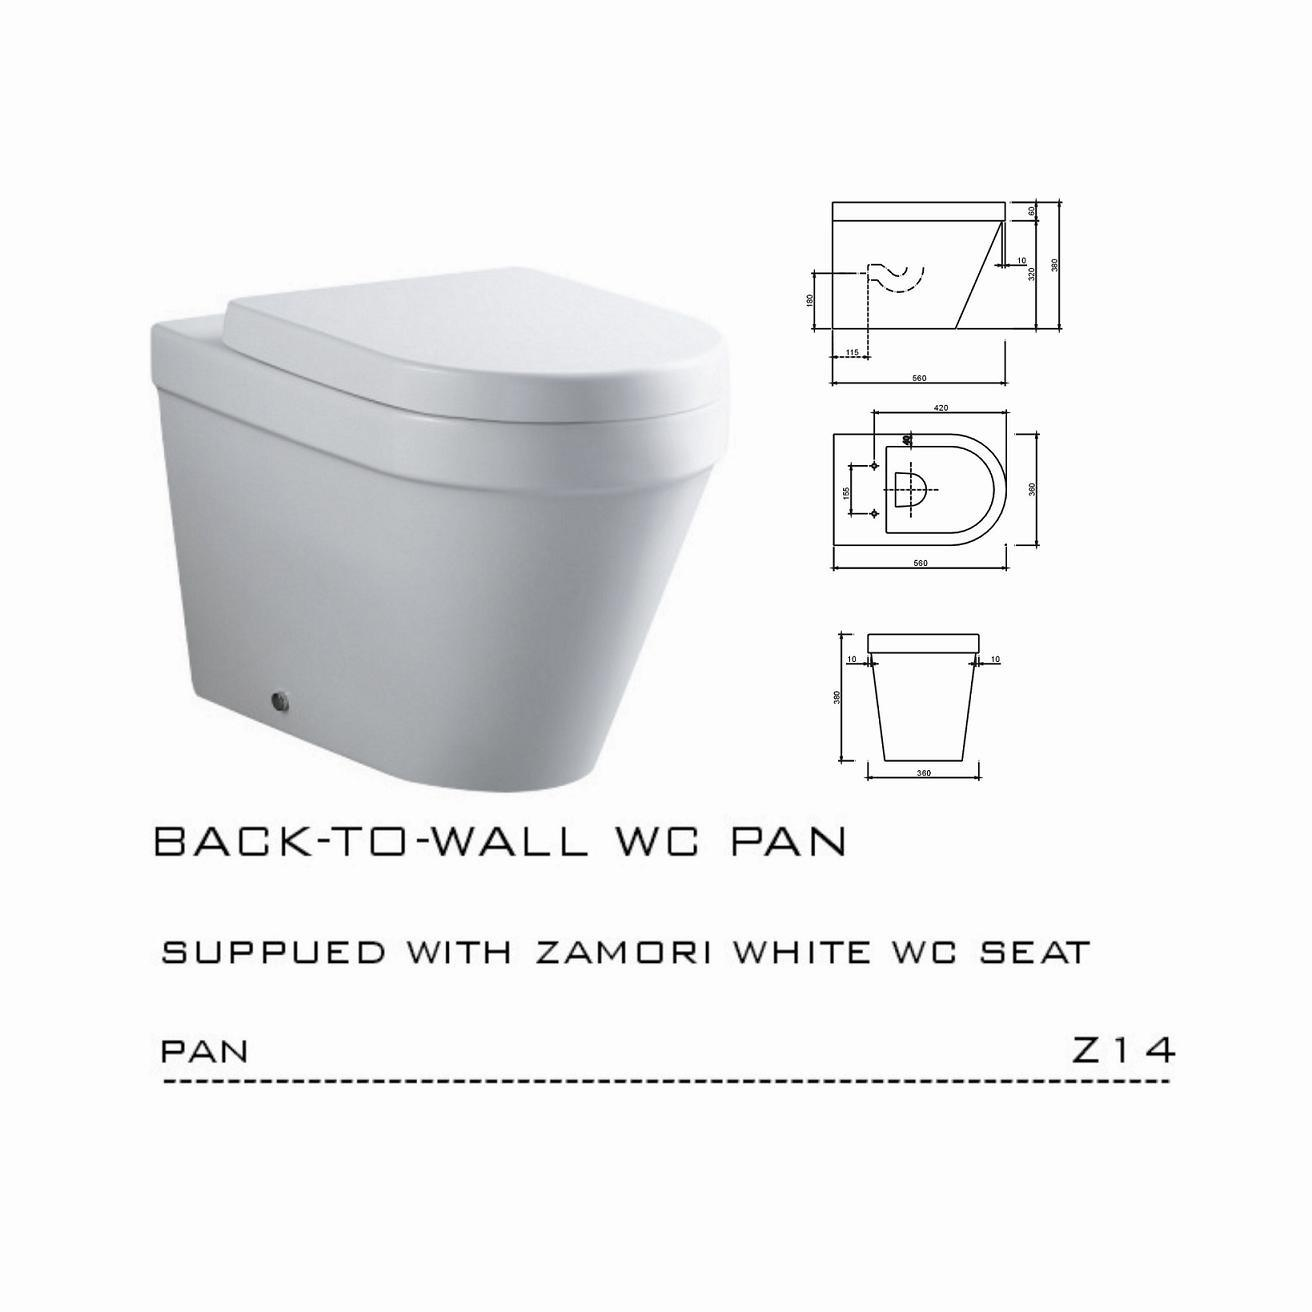 China Wave Back to Wall Pan Z14A China Toilet Wc